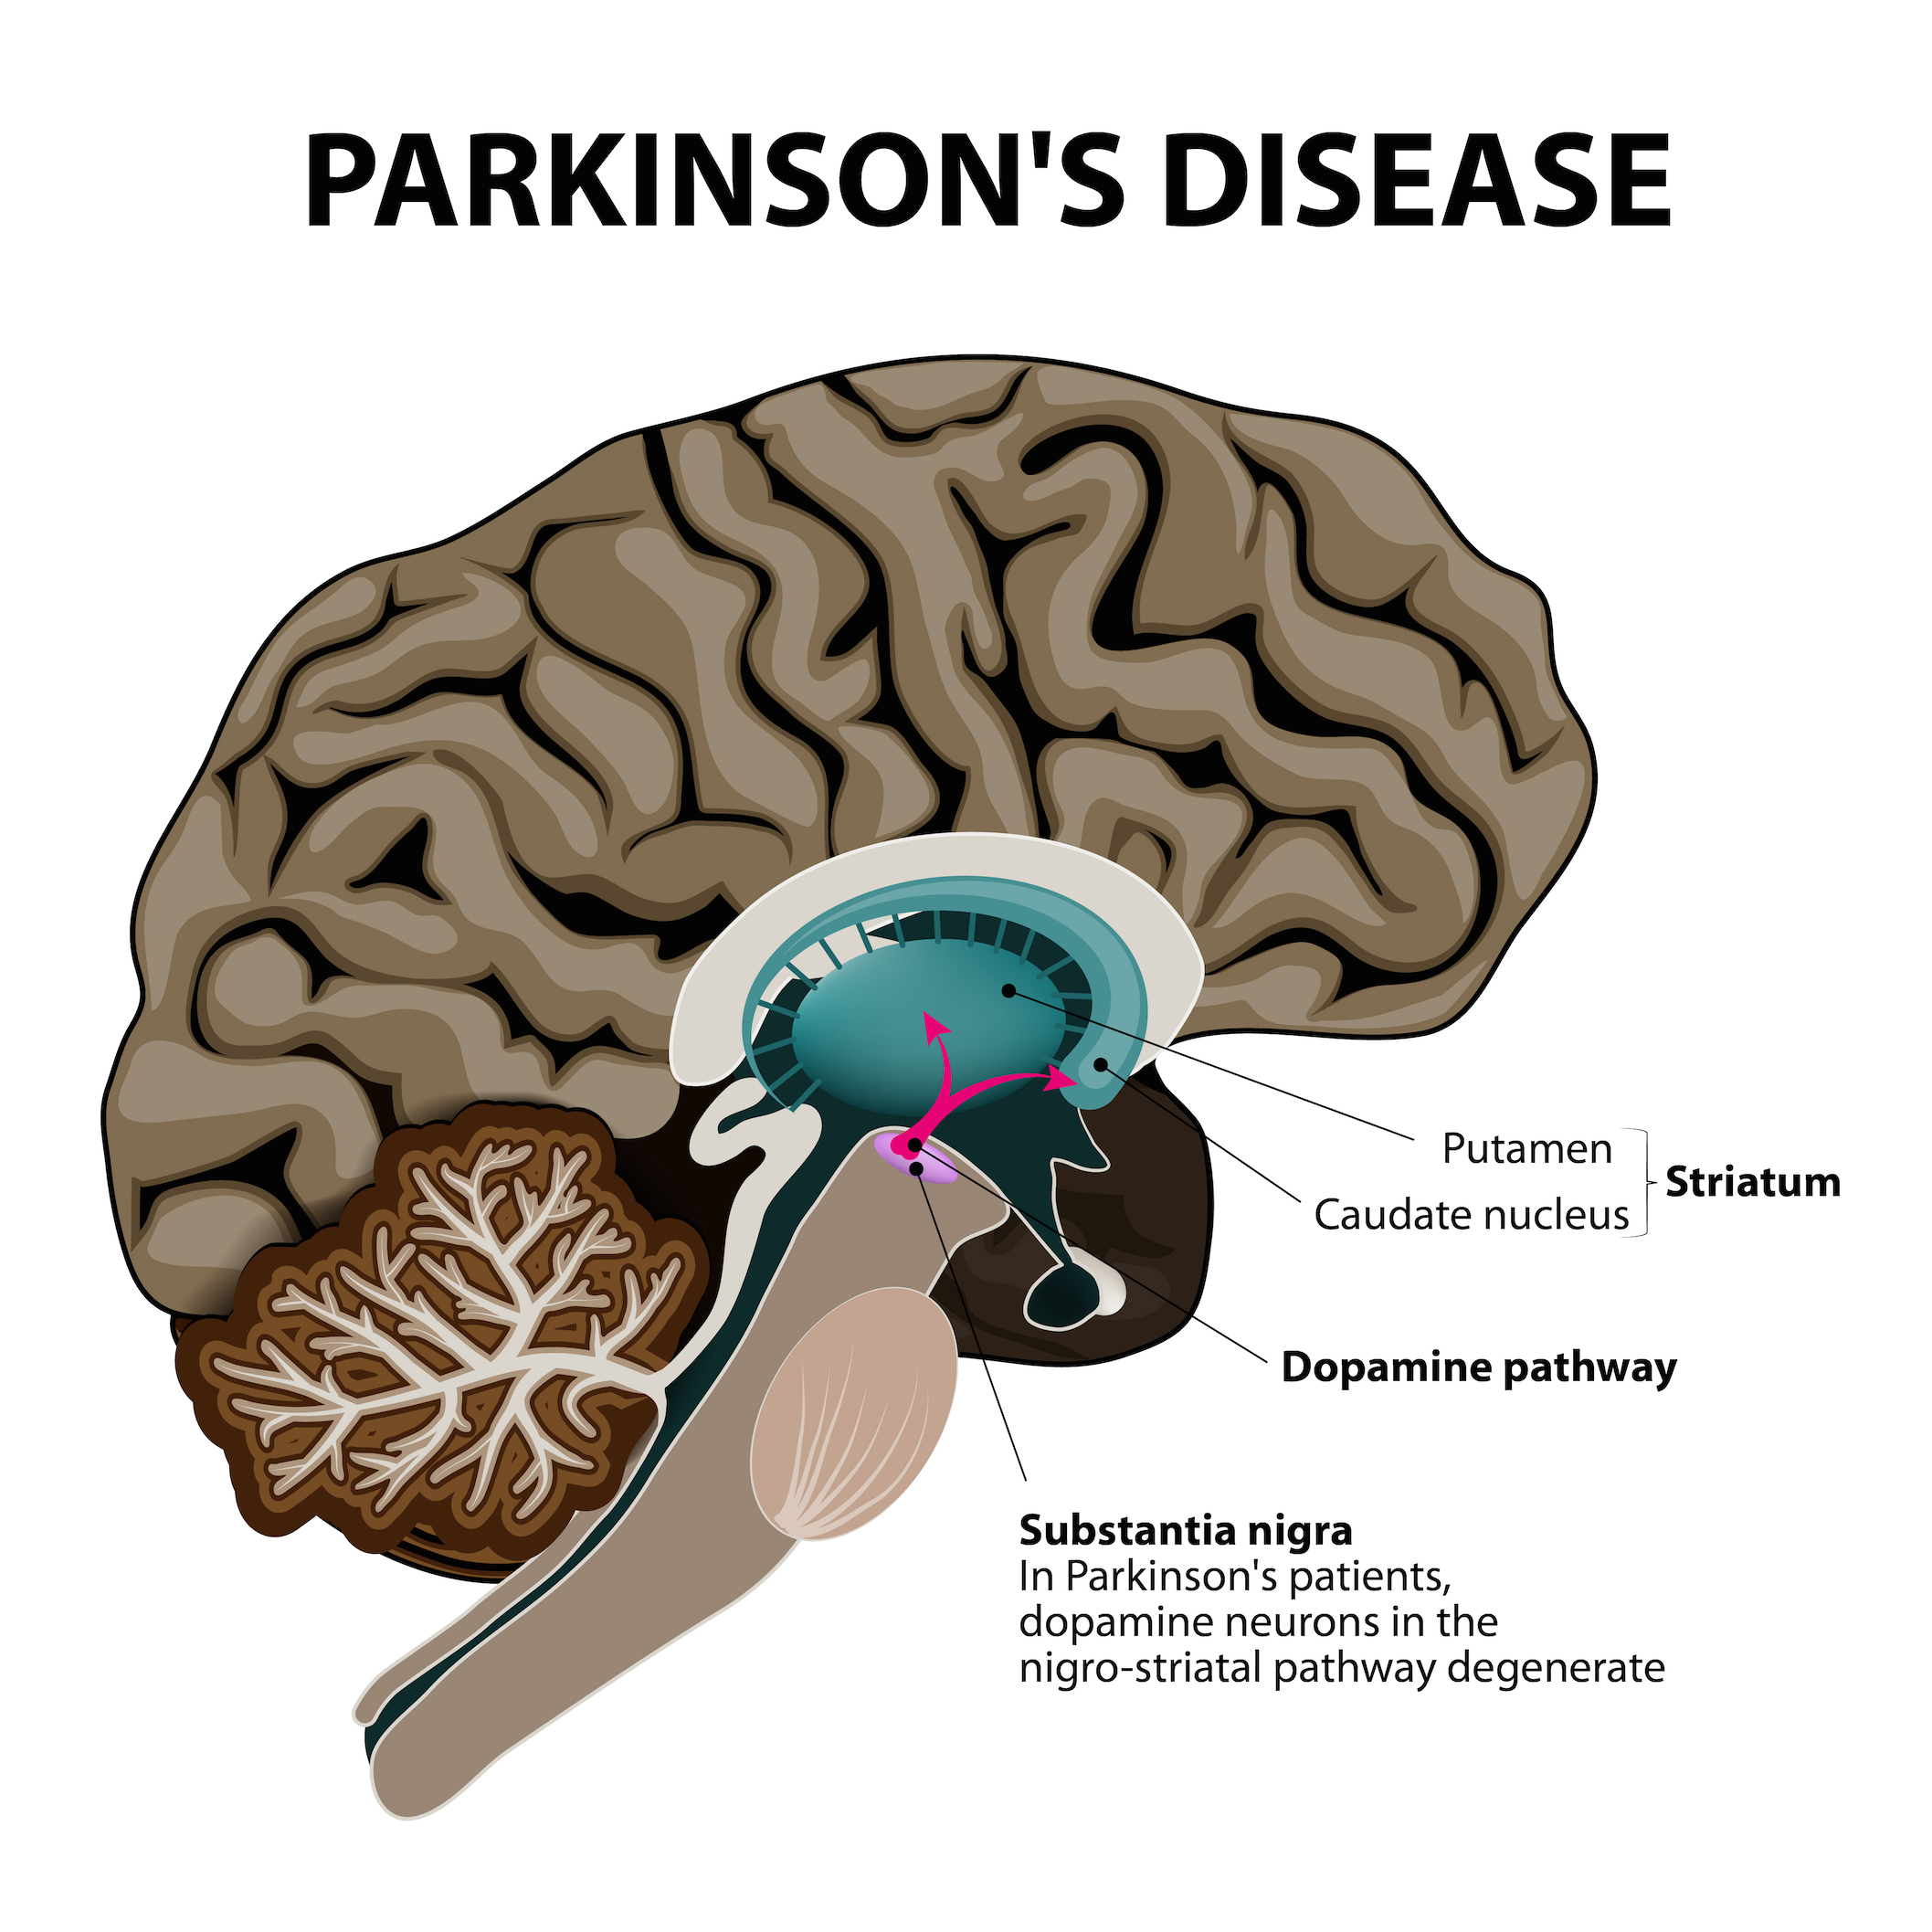 Parkinson's image resized.jpg